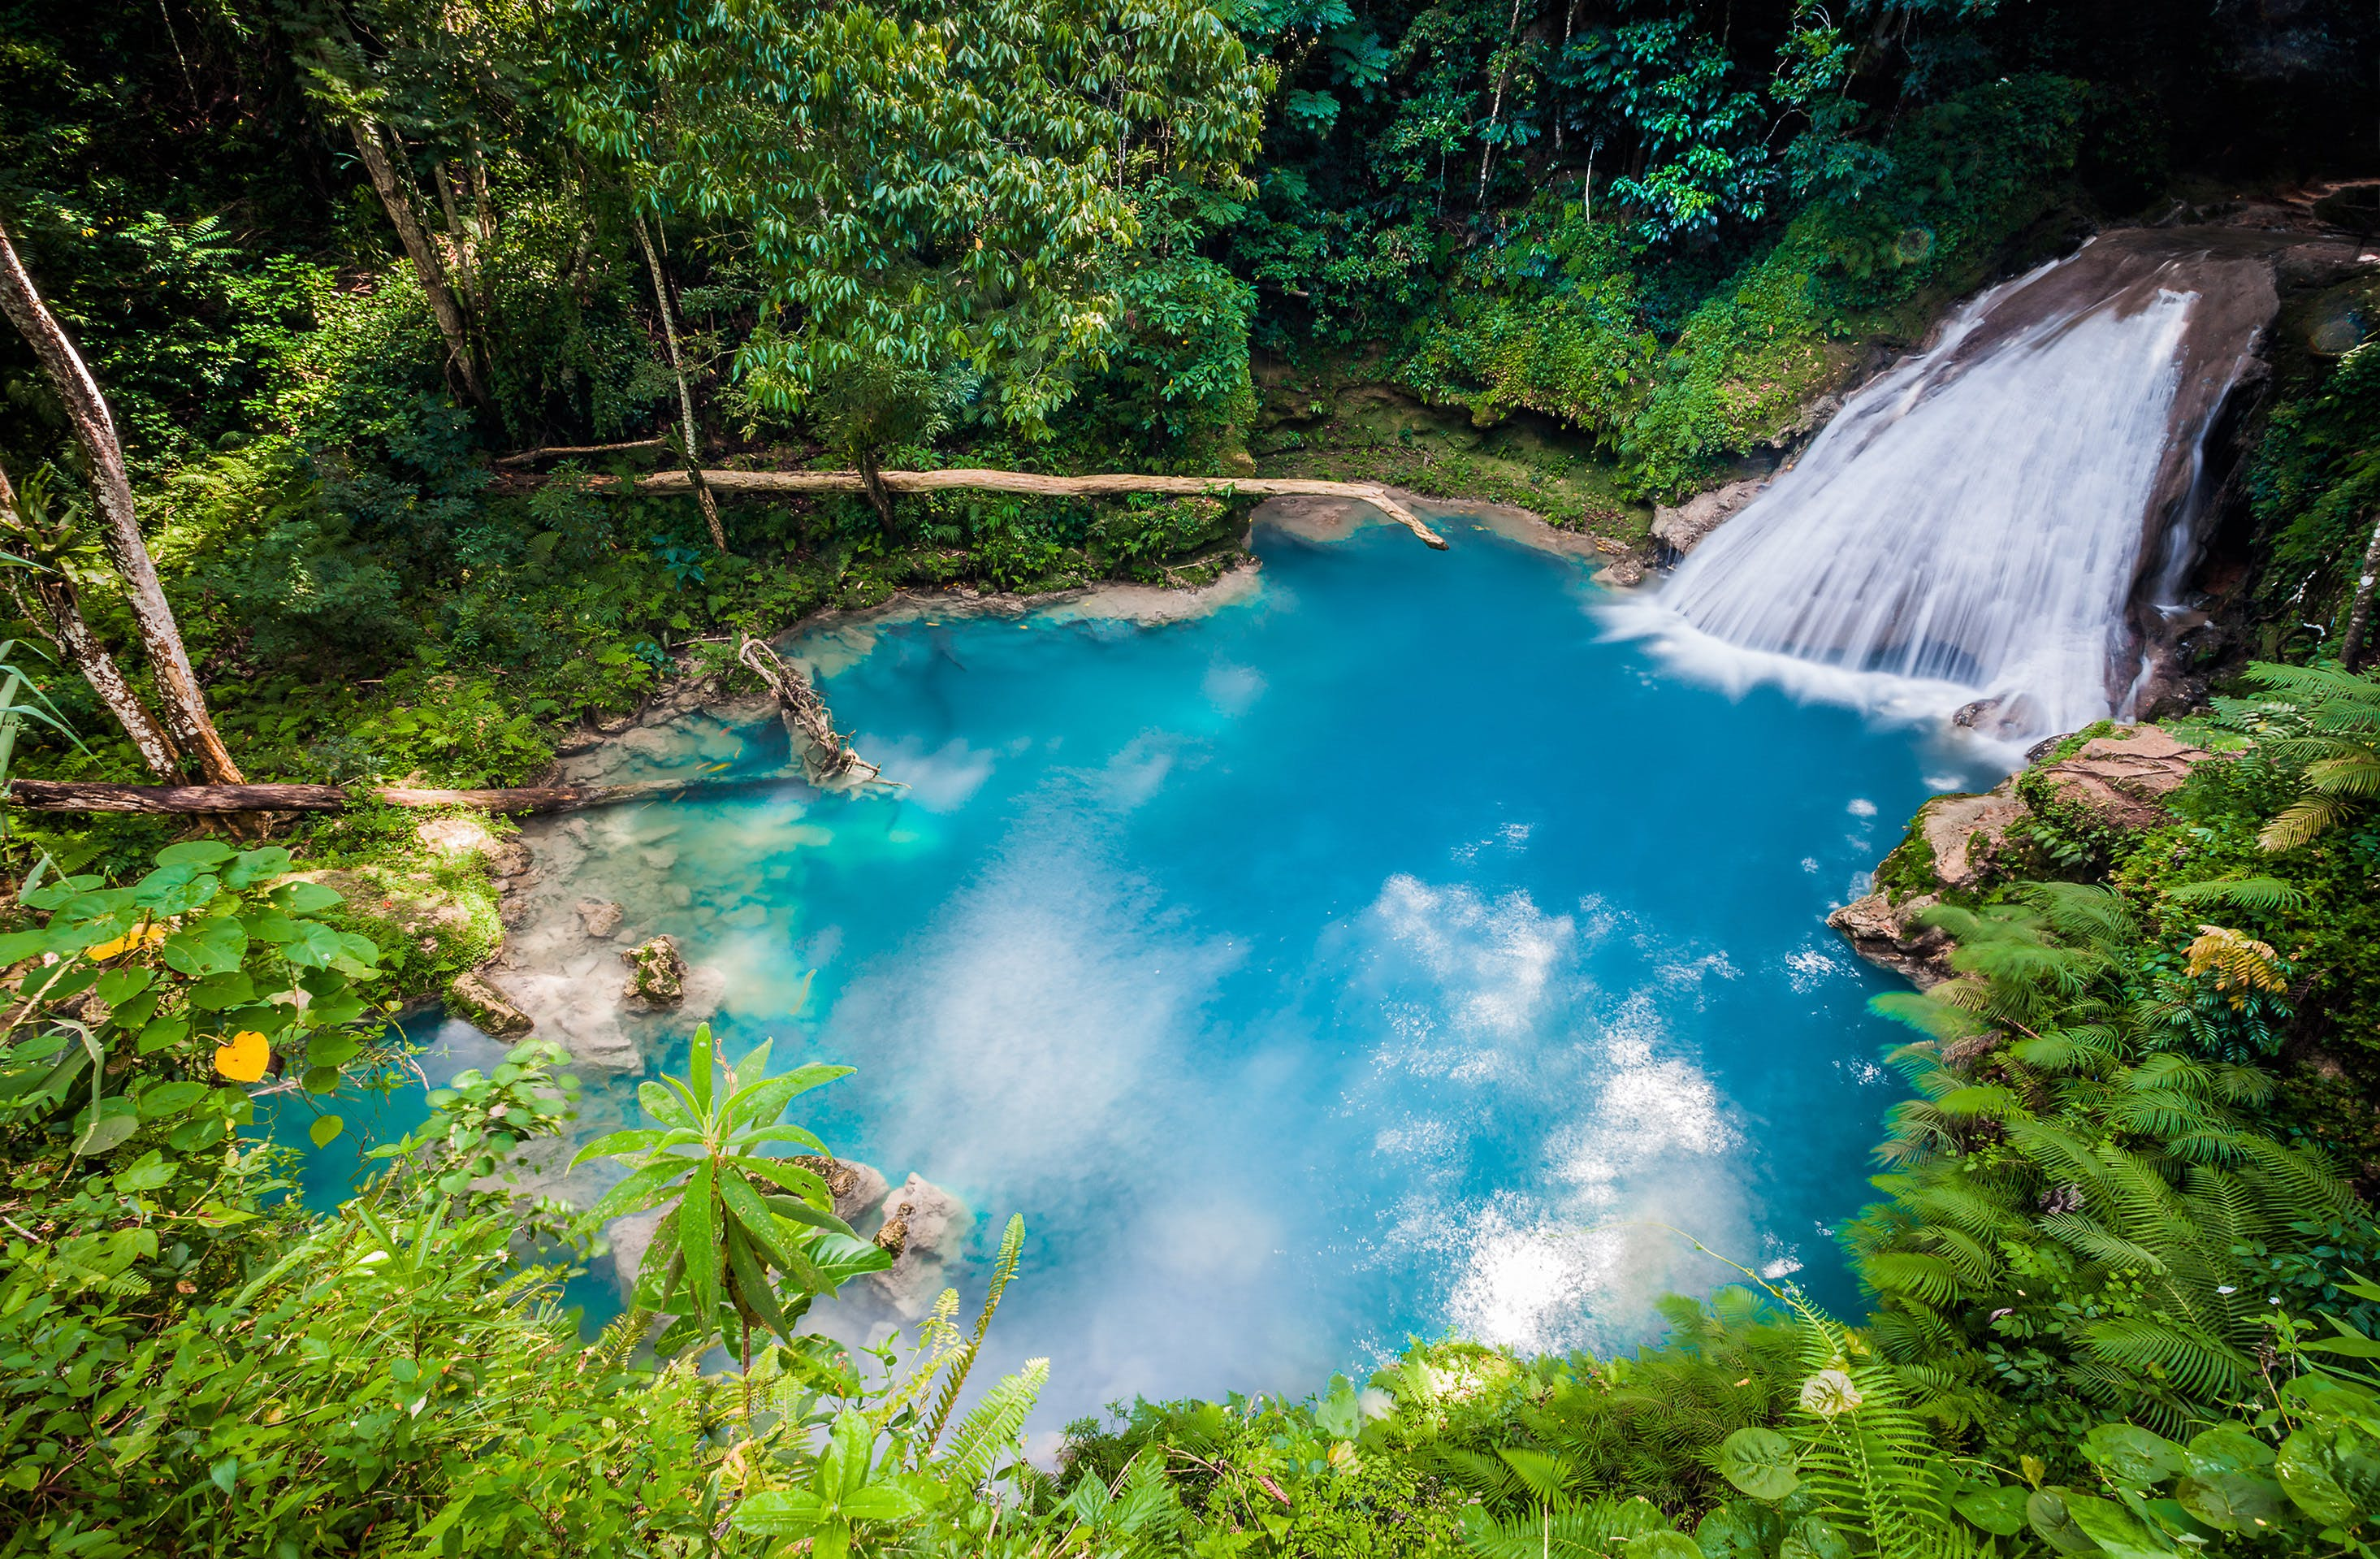 The Blue Hole Waterfall in Ocho Ríos is stunning and still considered a hidden gem to most travelers.